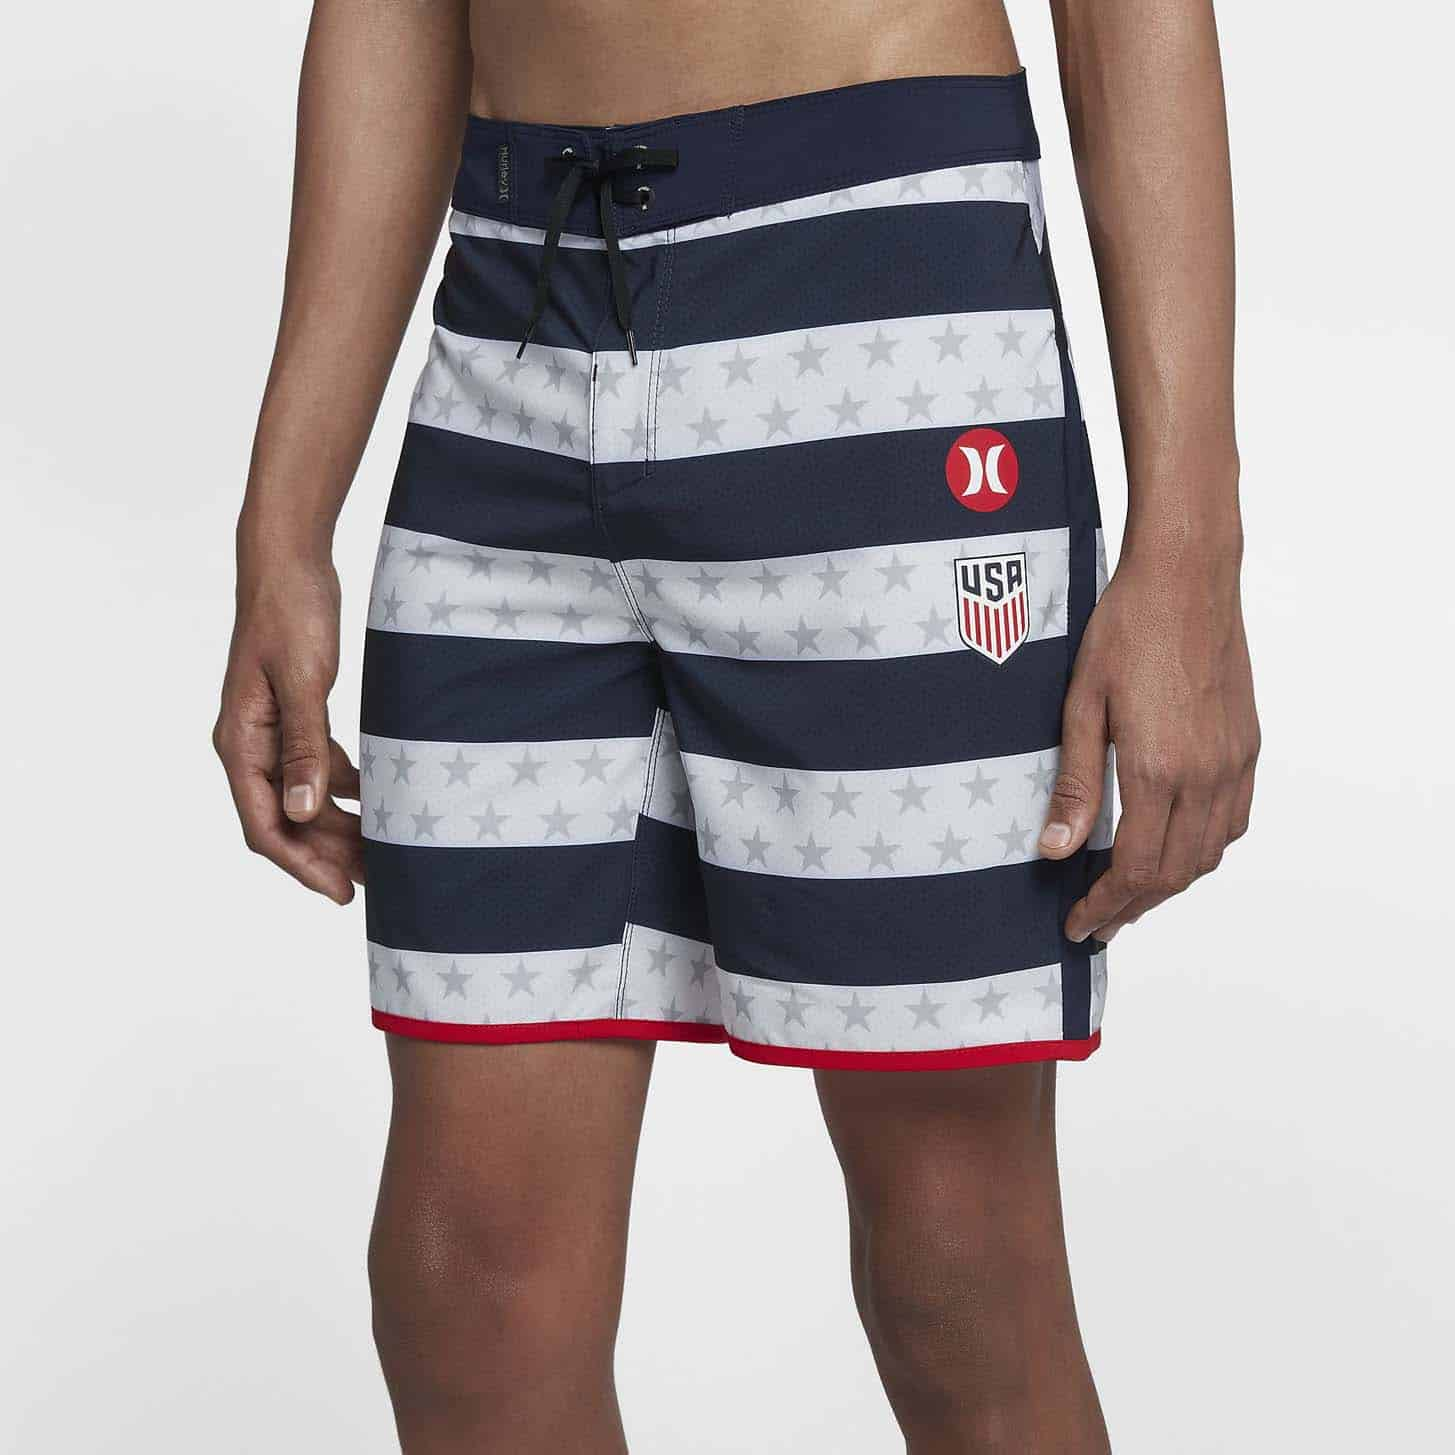 Sportstyle-hurley-board-short-sélections-nationales-coupe-monde-2018-mai-2018-4